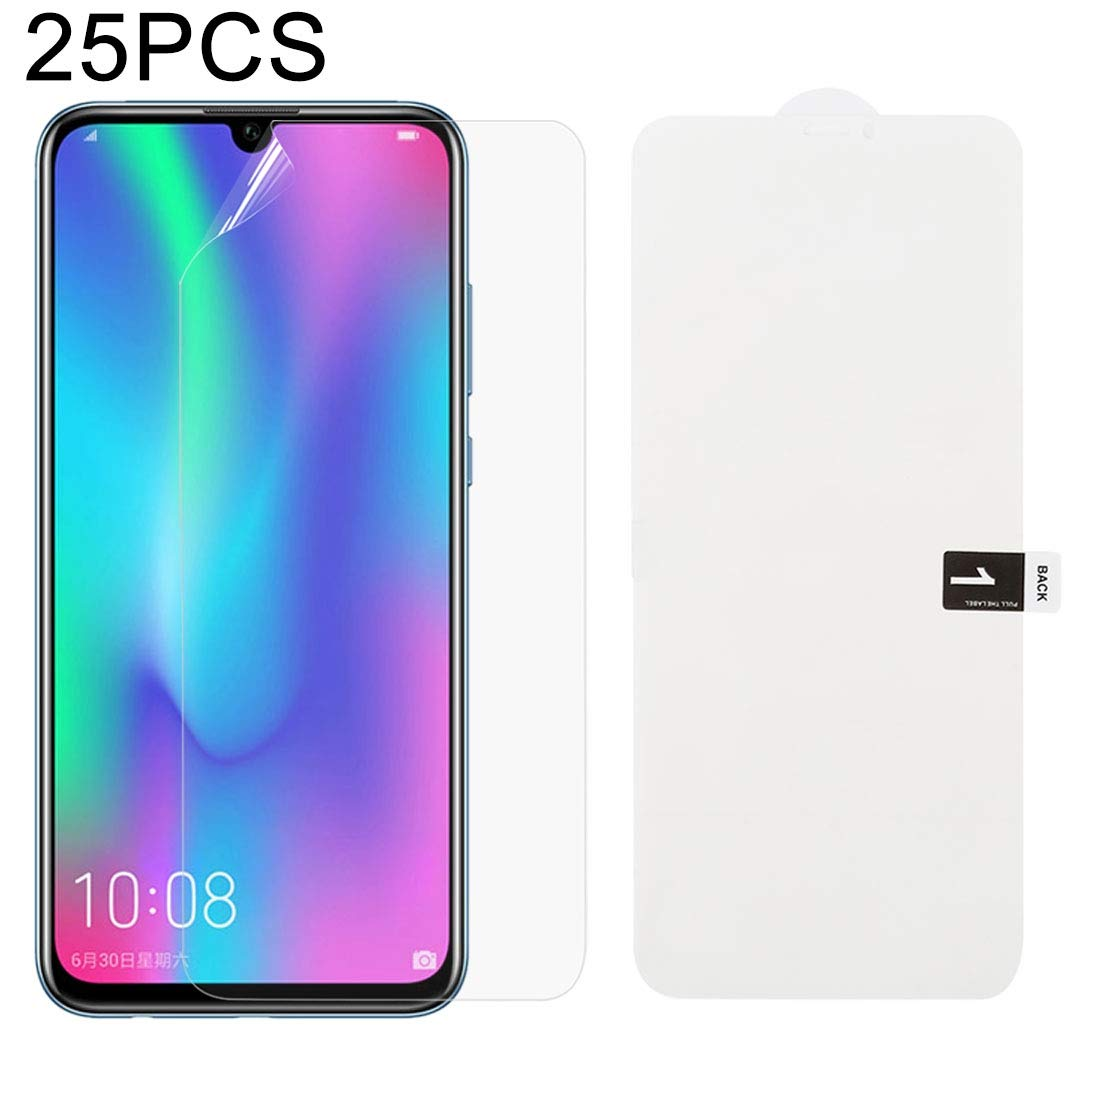 JIANGNIUS Screen Protector 25 PCS Soft Hydrogel Film Full Cover Front Protector with Alcohol Cotton Scratch Card for Galaxy M30